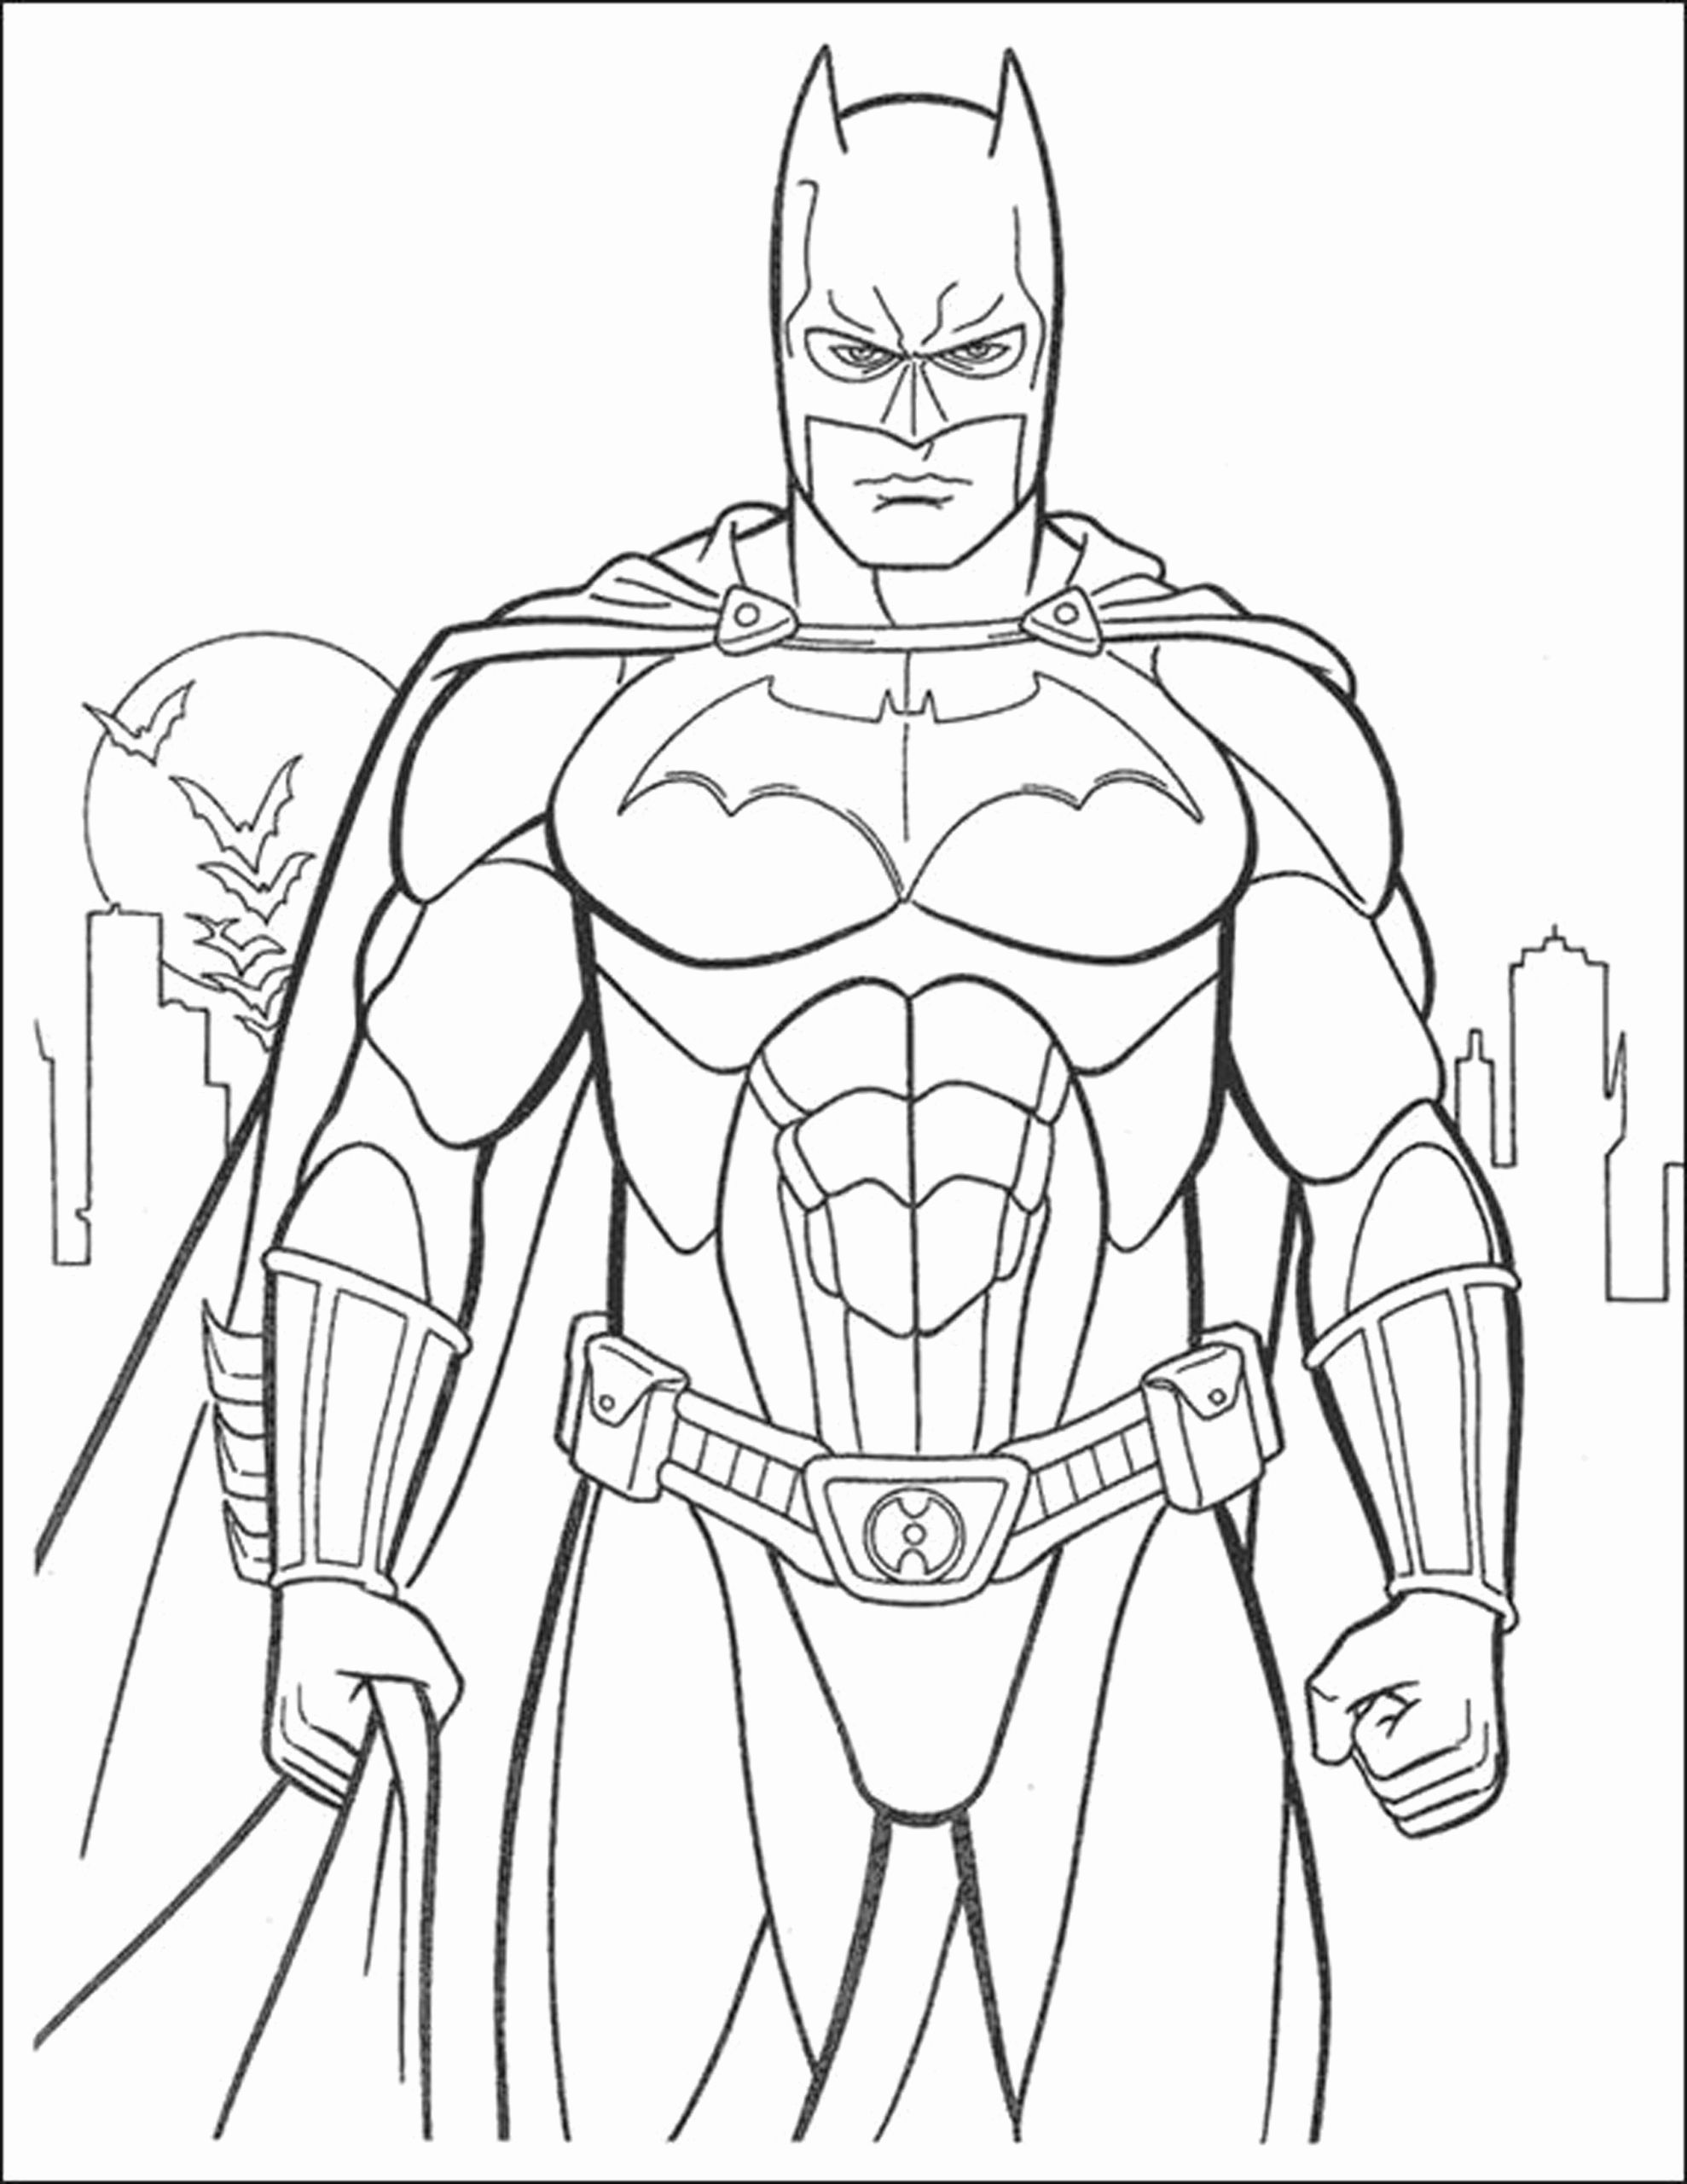 Coloring Pages Of Batman And Superman on a budget